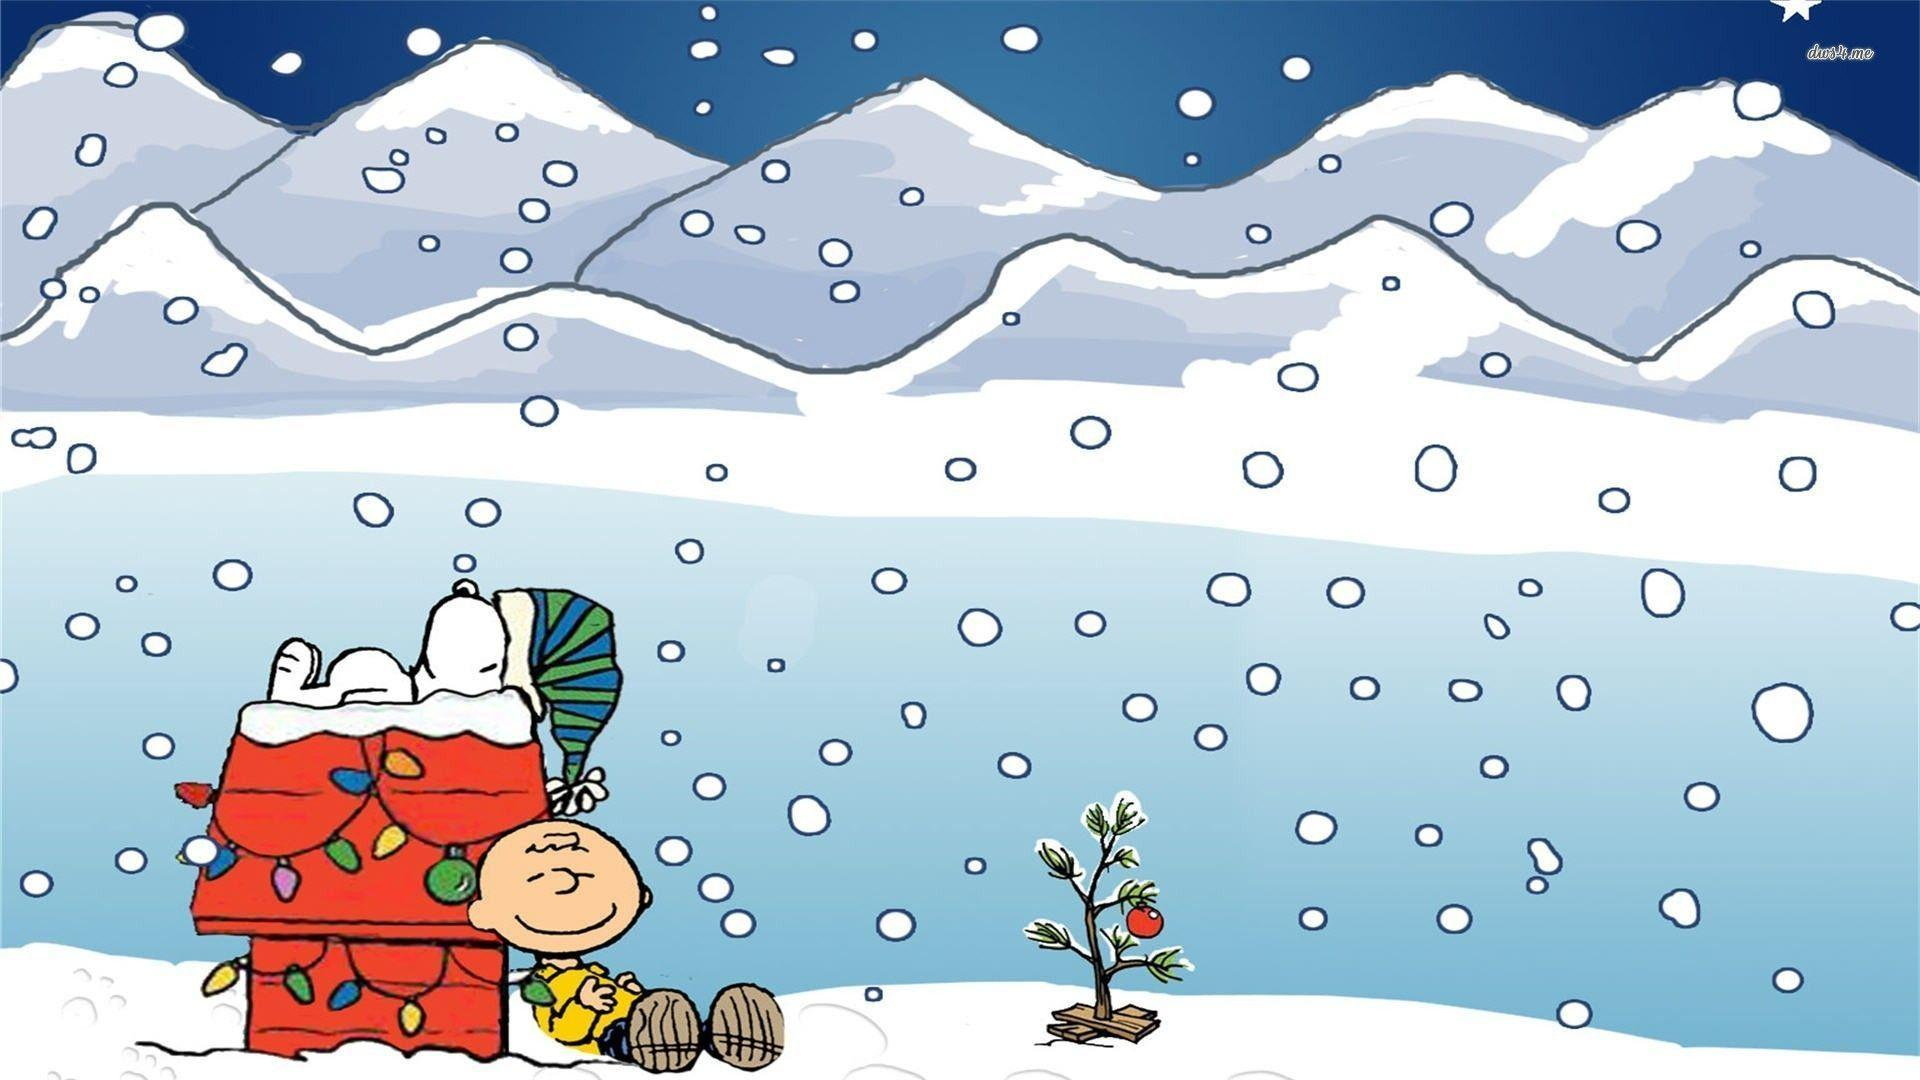 Snoopy Christmas Wallpaper hd pictures